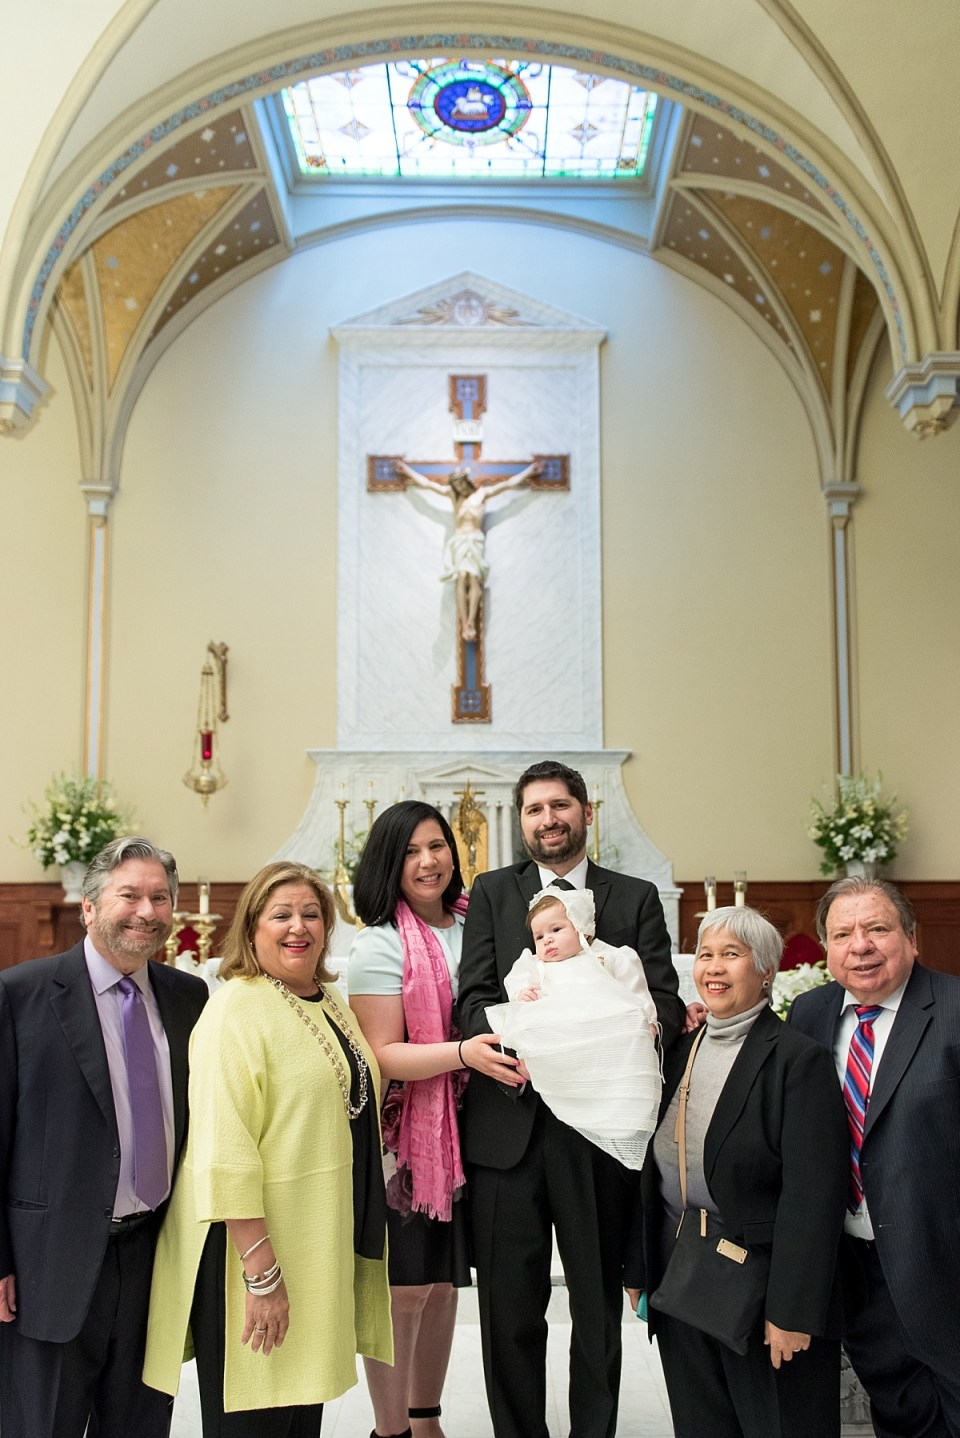 Baptism at St. Mary's Catholic Church in Old Town Alexandria